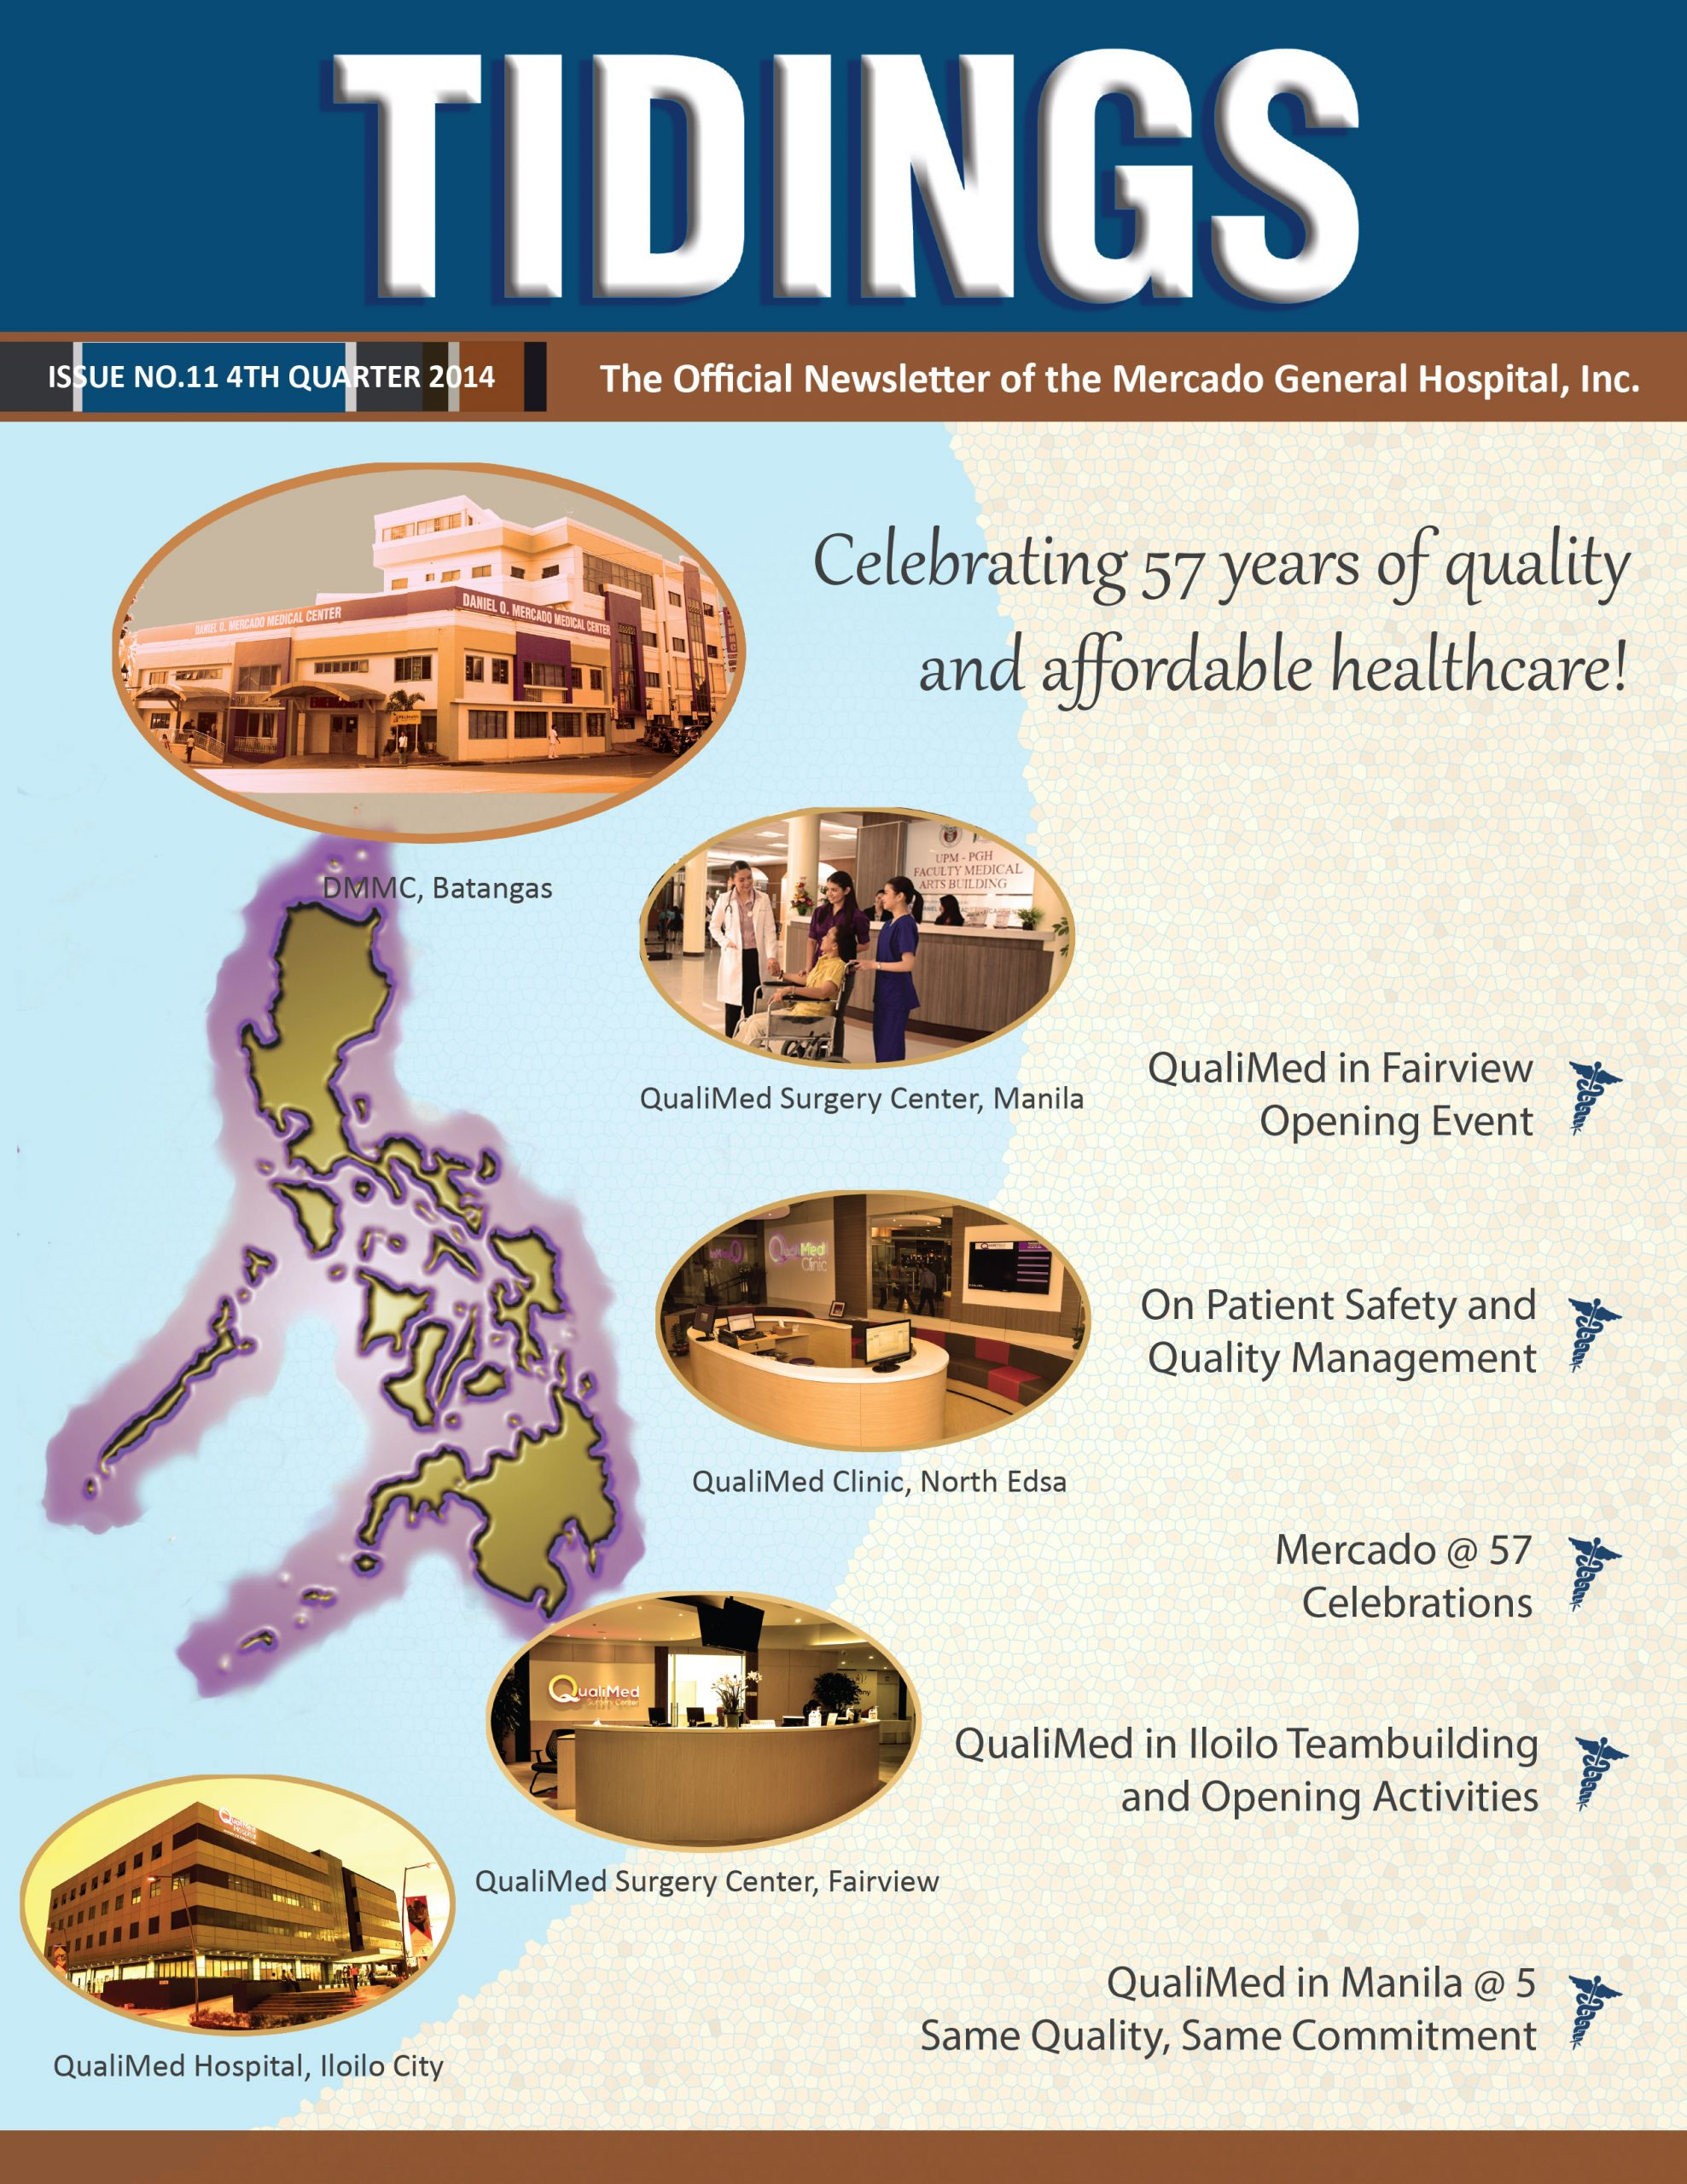 Tidings Newsletter Issue No.11